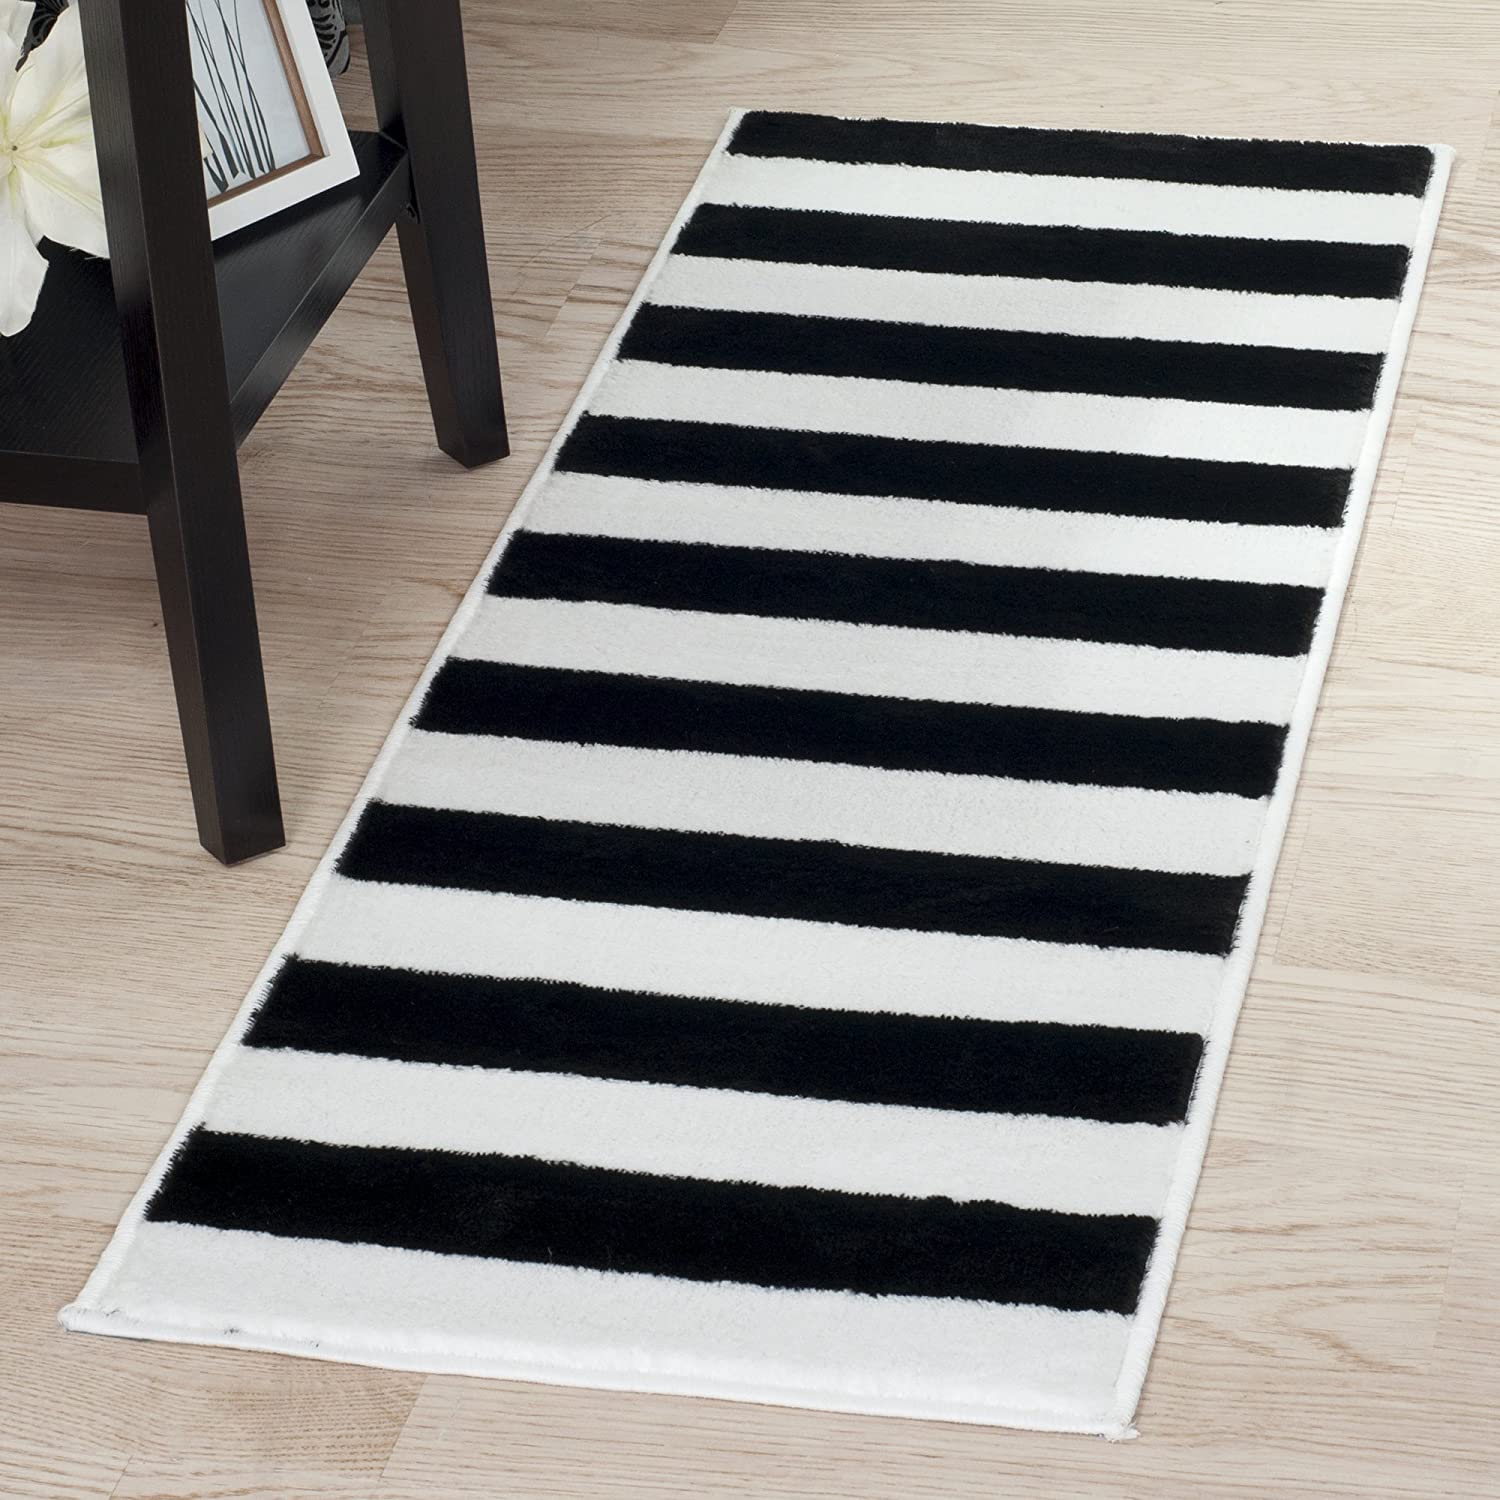 living ceilings from for pin rooms the rug and white bedrooms striped black new year a